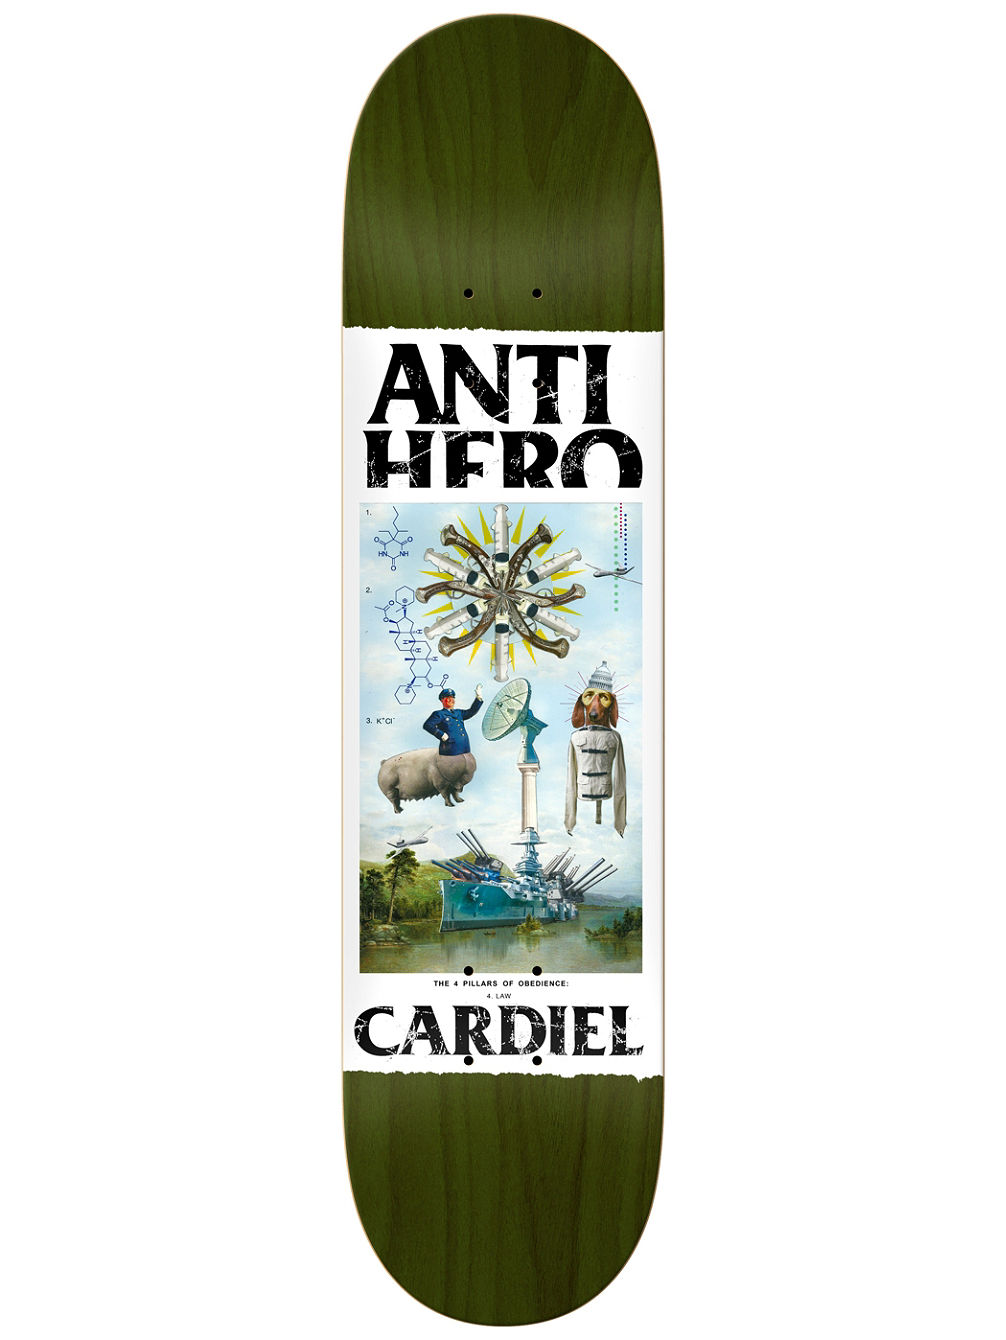 "Cardiel Four Pillars Of Obedience 8.4"" Skate"